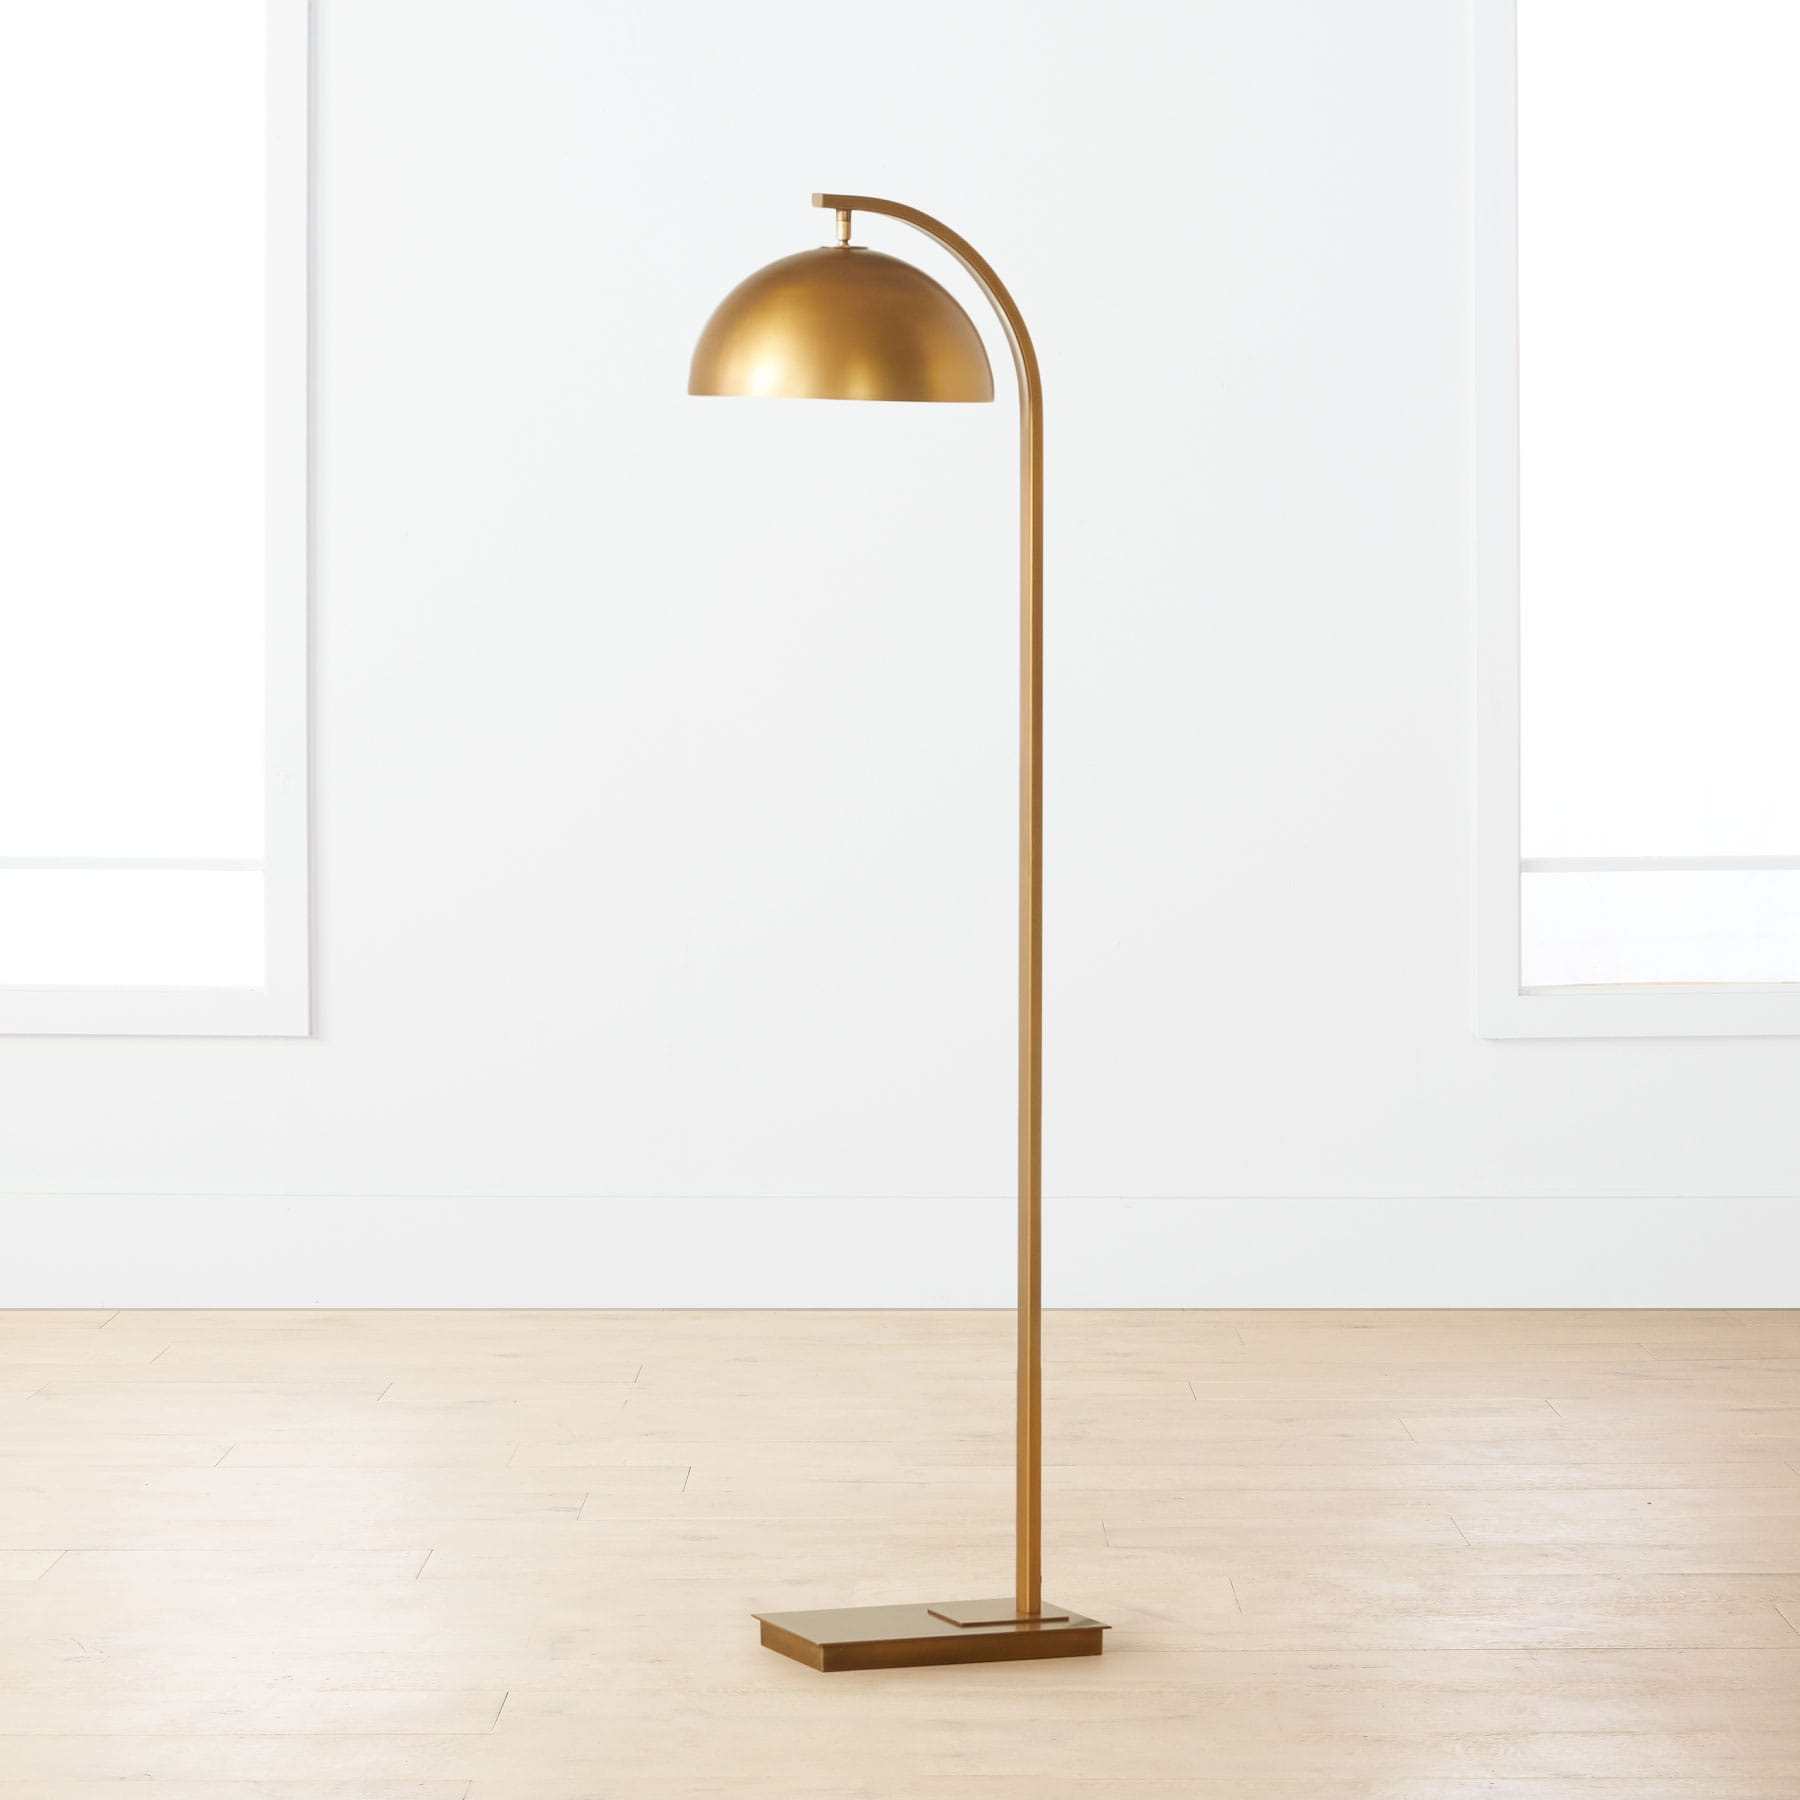 Davy Brass Floor Lamp